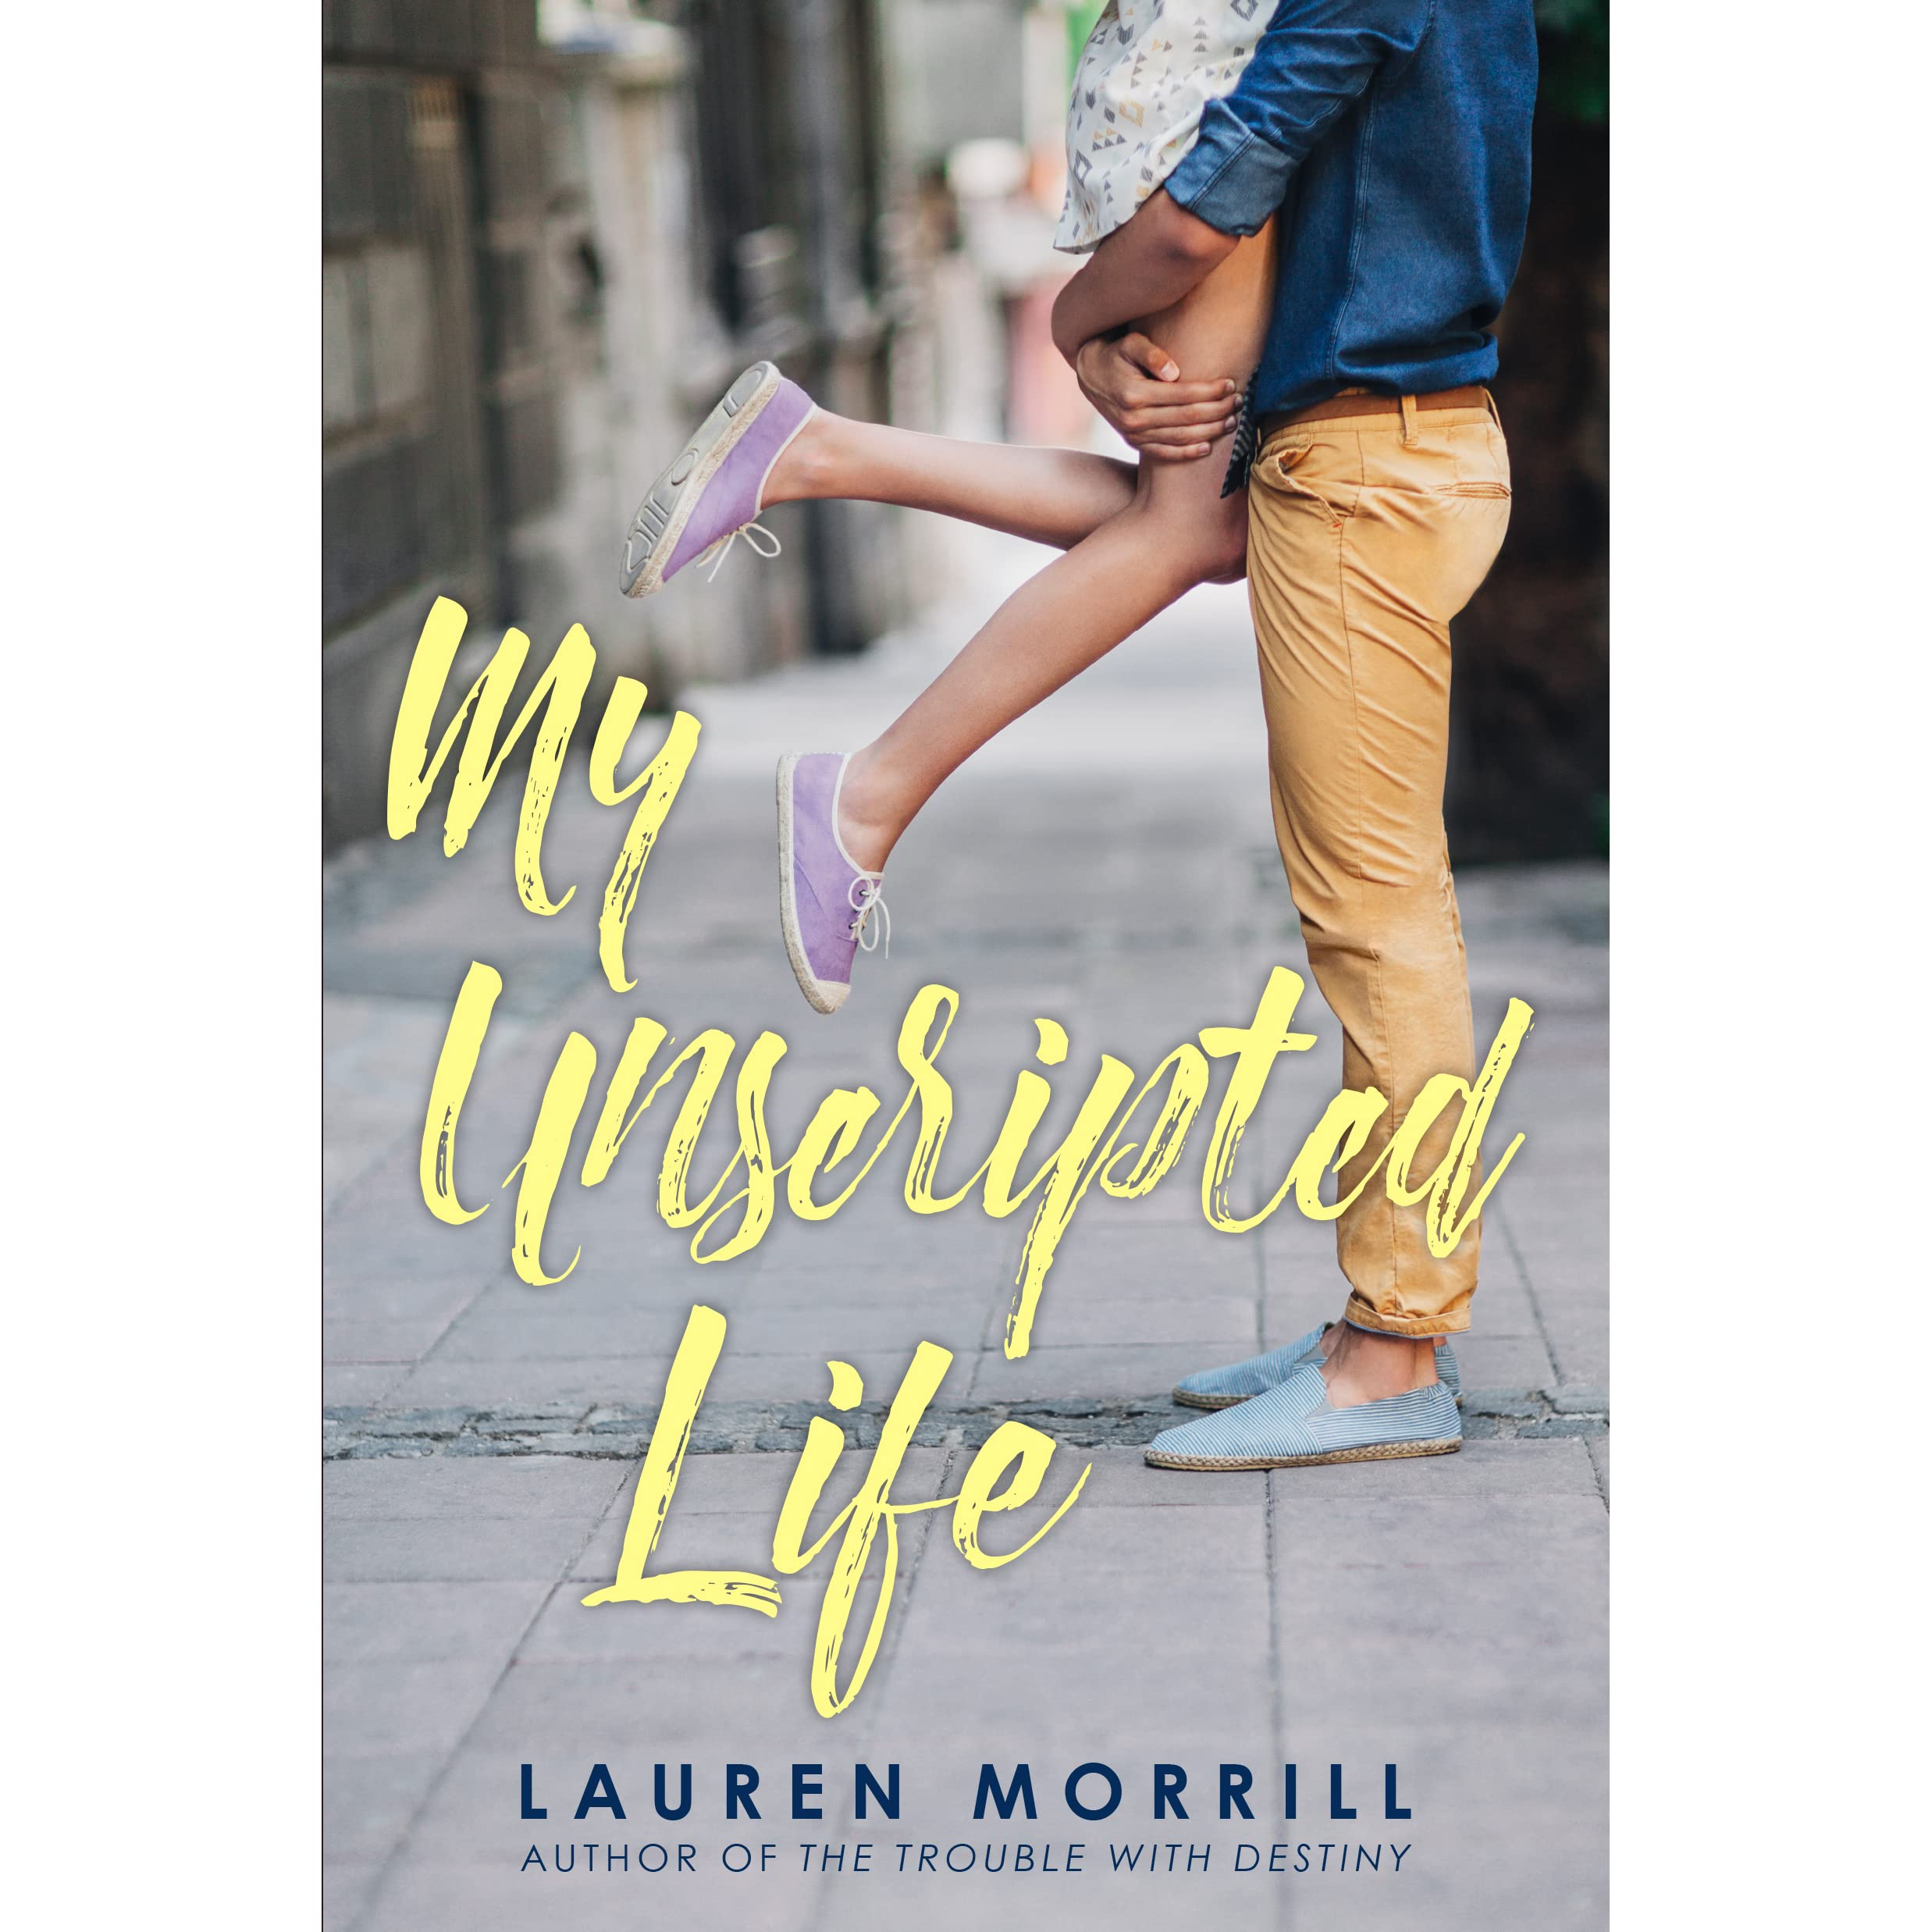 Epub meant lauren morrill download be to